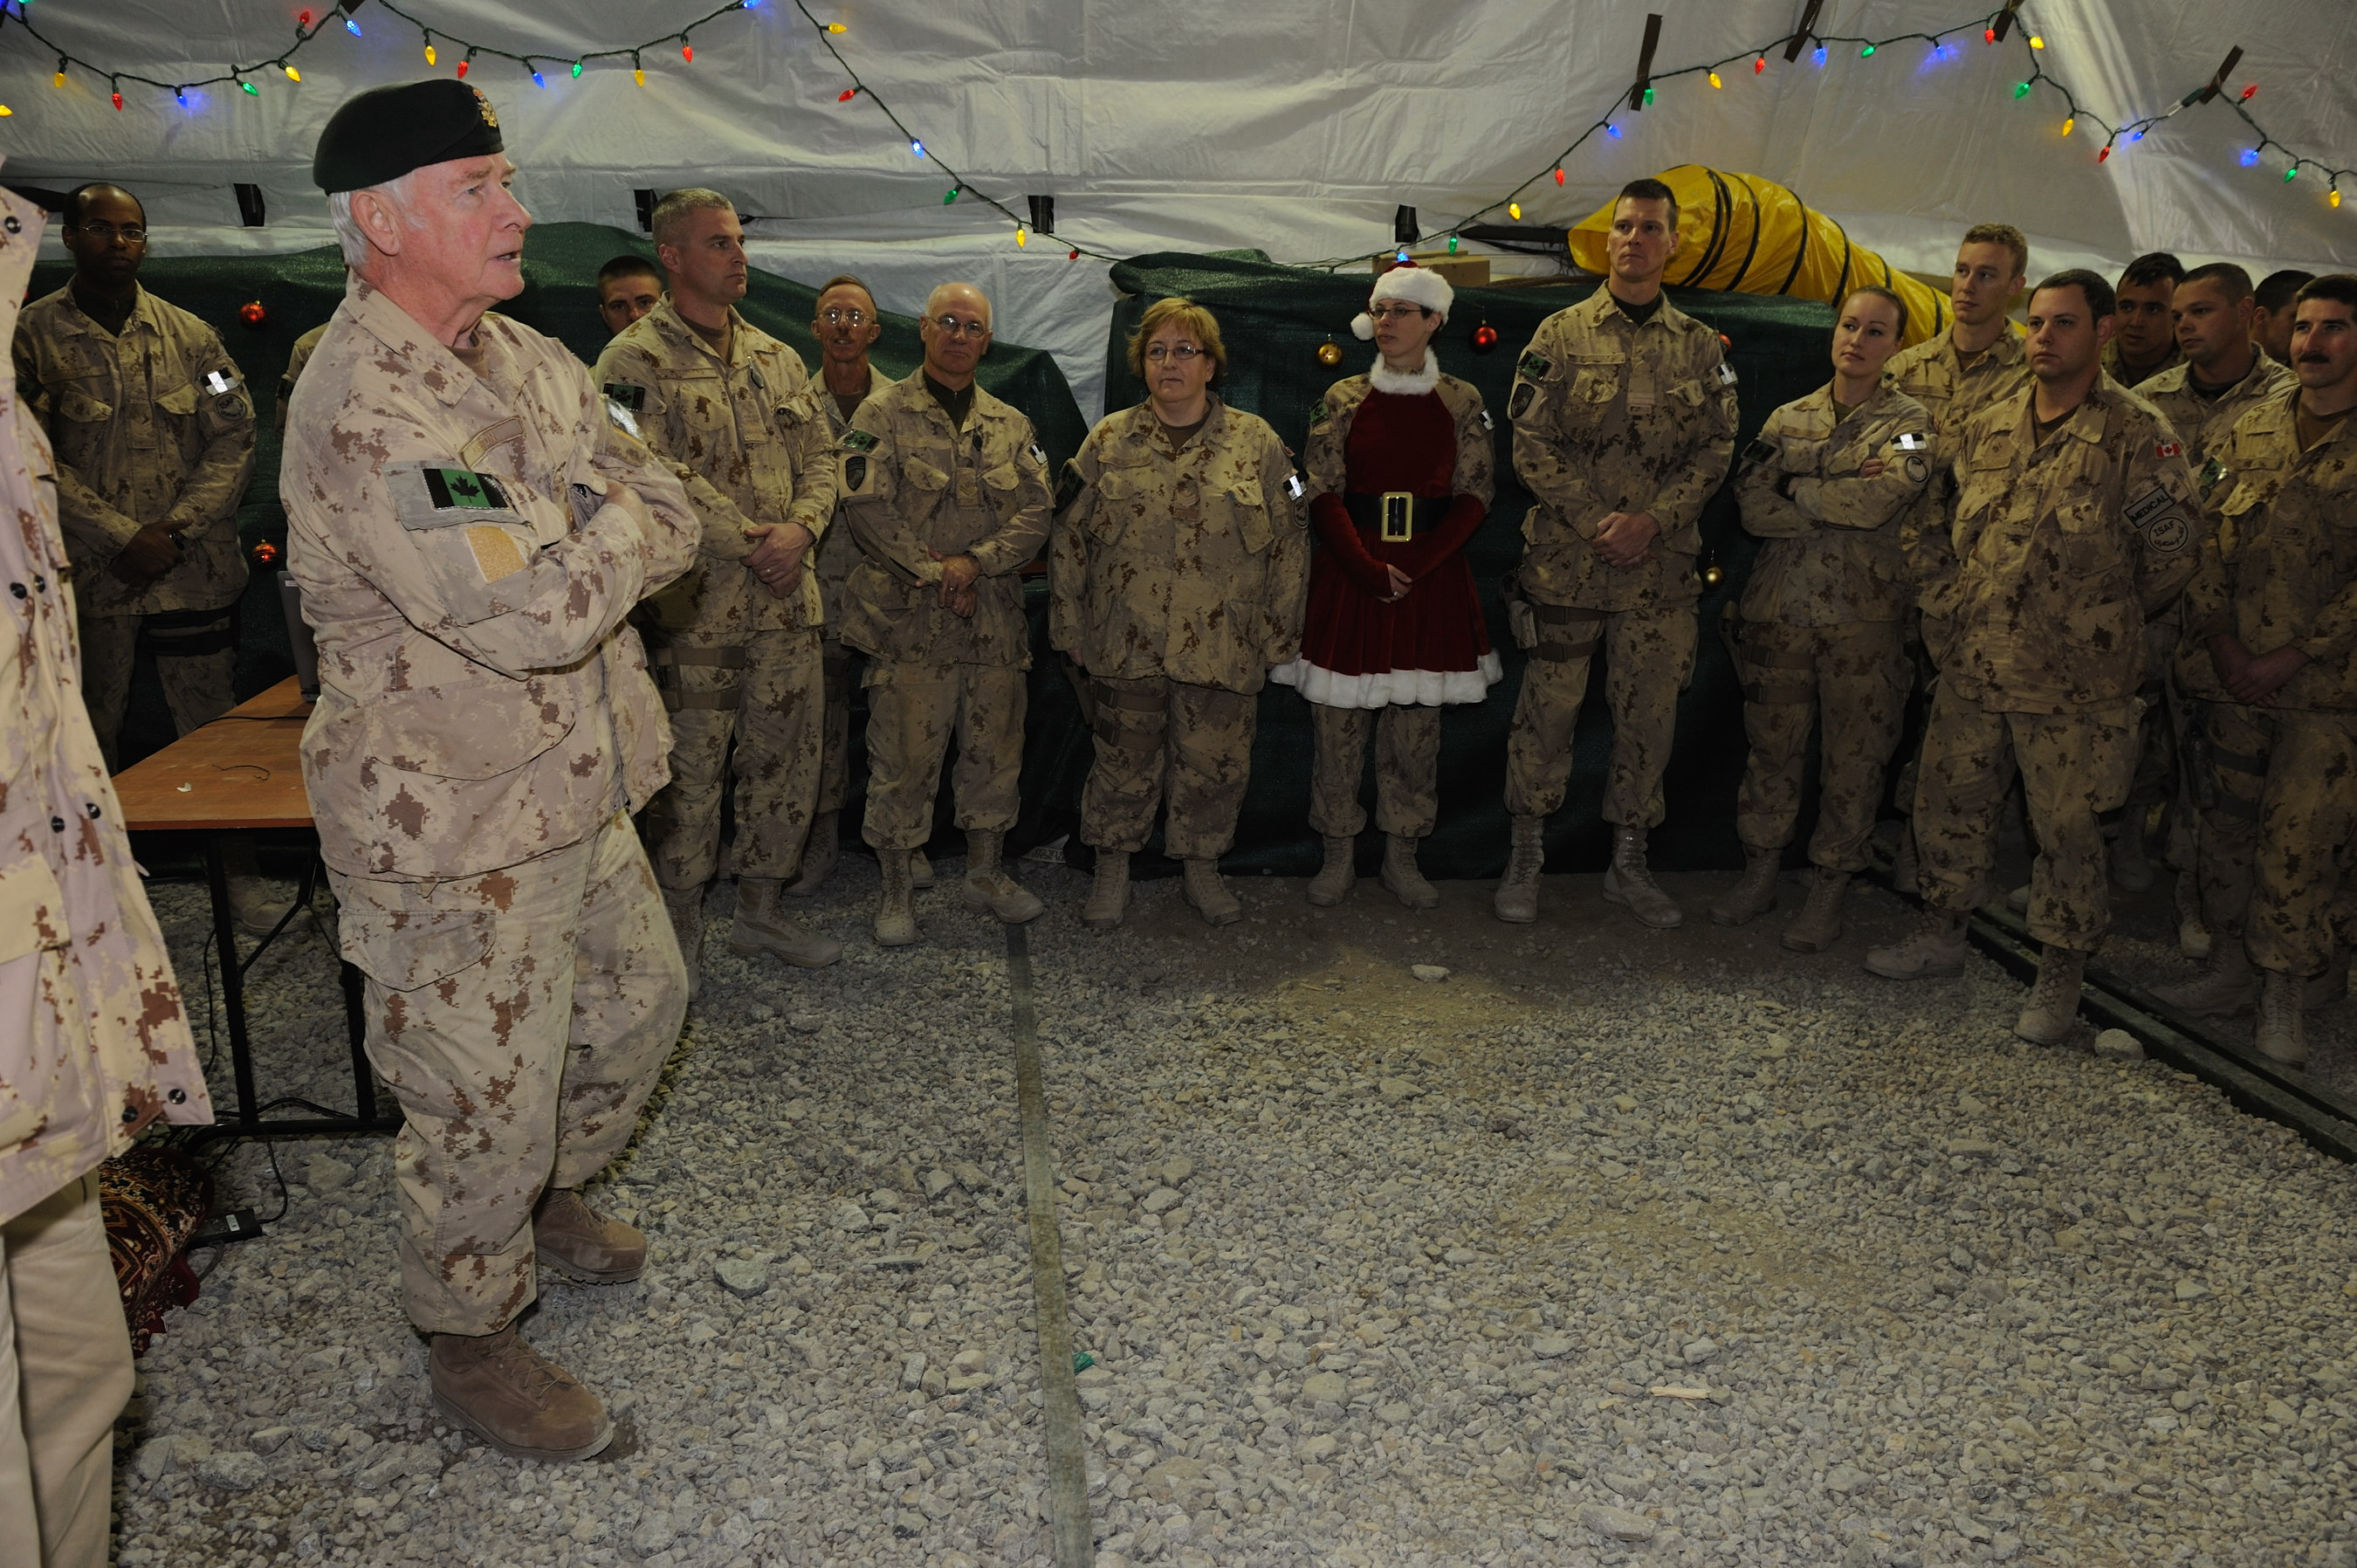 His Excellency spoke with Canadian Forces personnel at Camp Blackhorse in Kabul on December 25, 2011. Approximately 920 Canadian Forces personnel serve in advisory and support roles at training camps and headquarters locations primarily in the Kabul area.